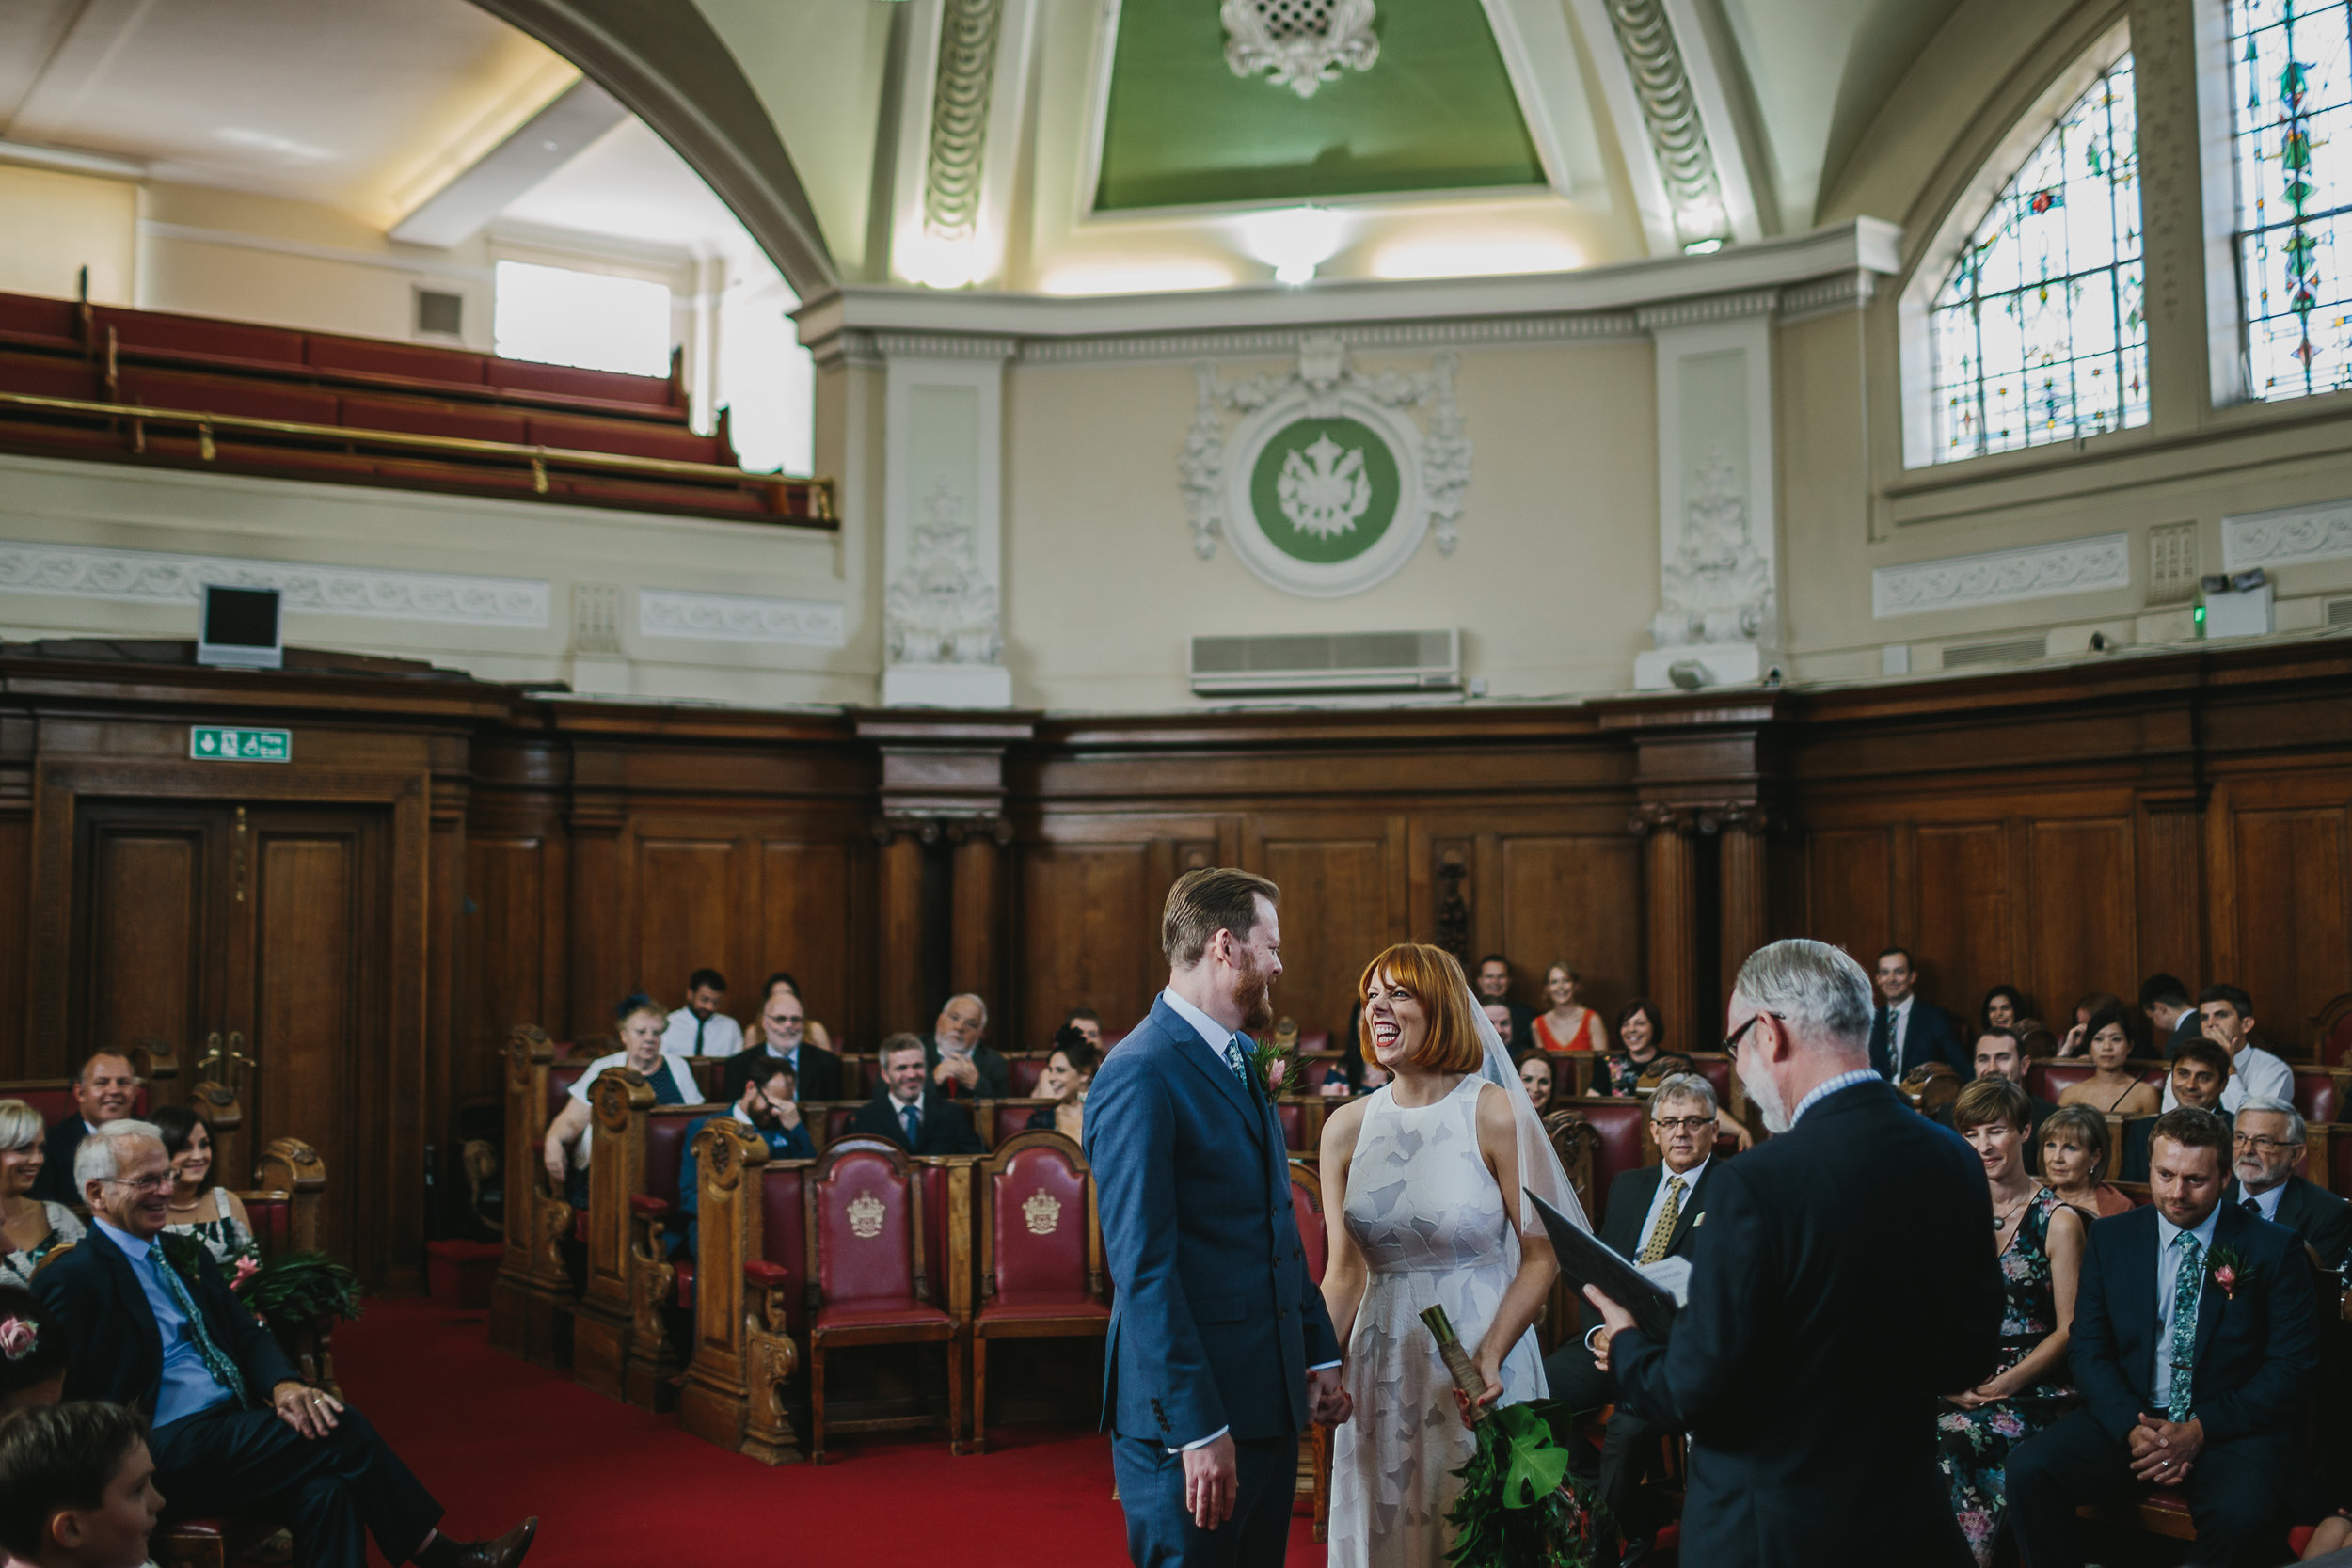 Islington_Town_Hall_Wedding_24.JPG